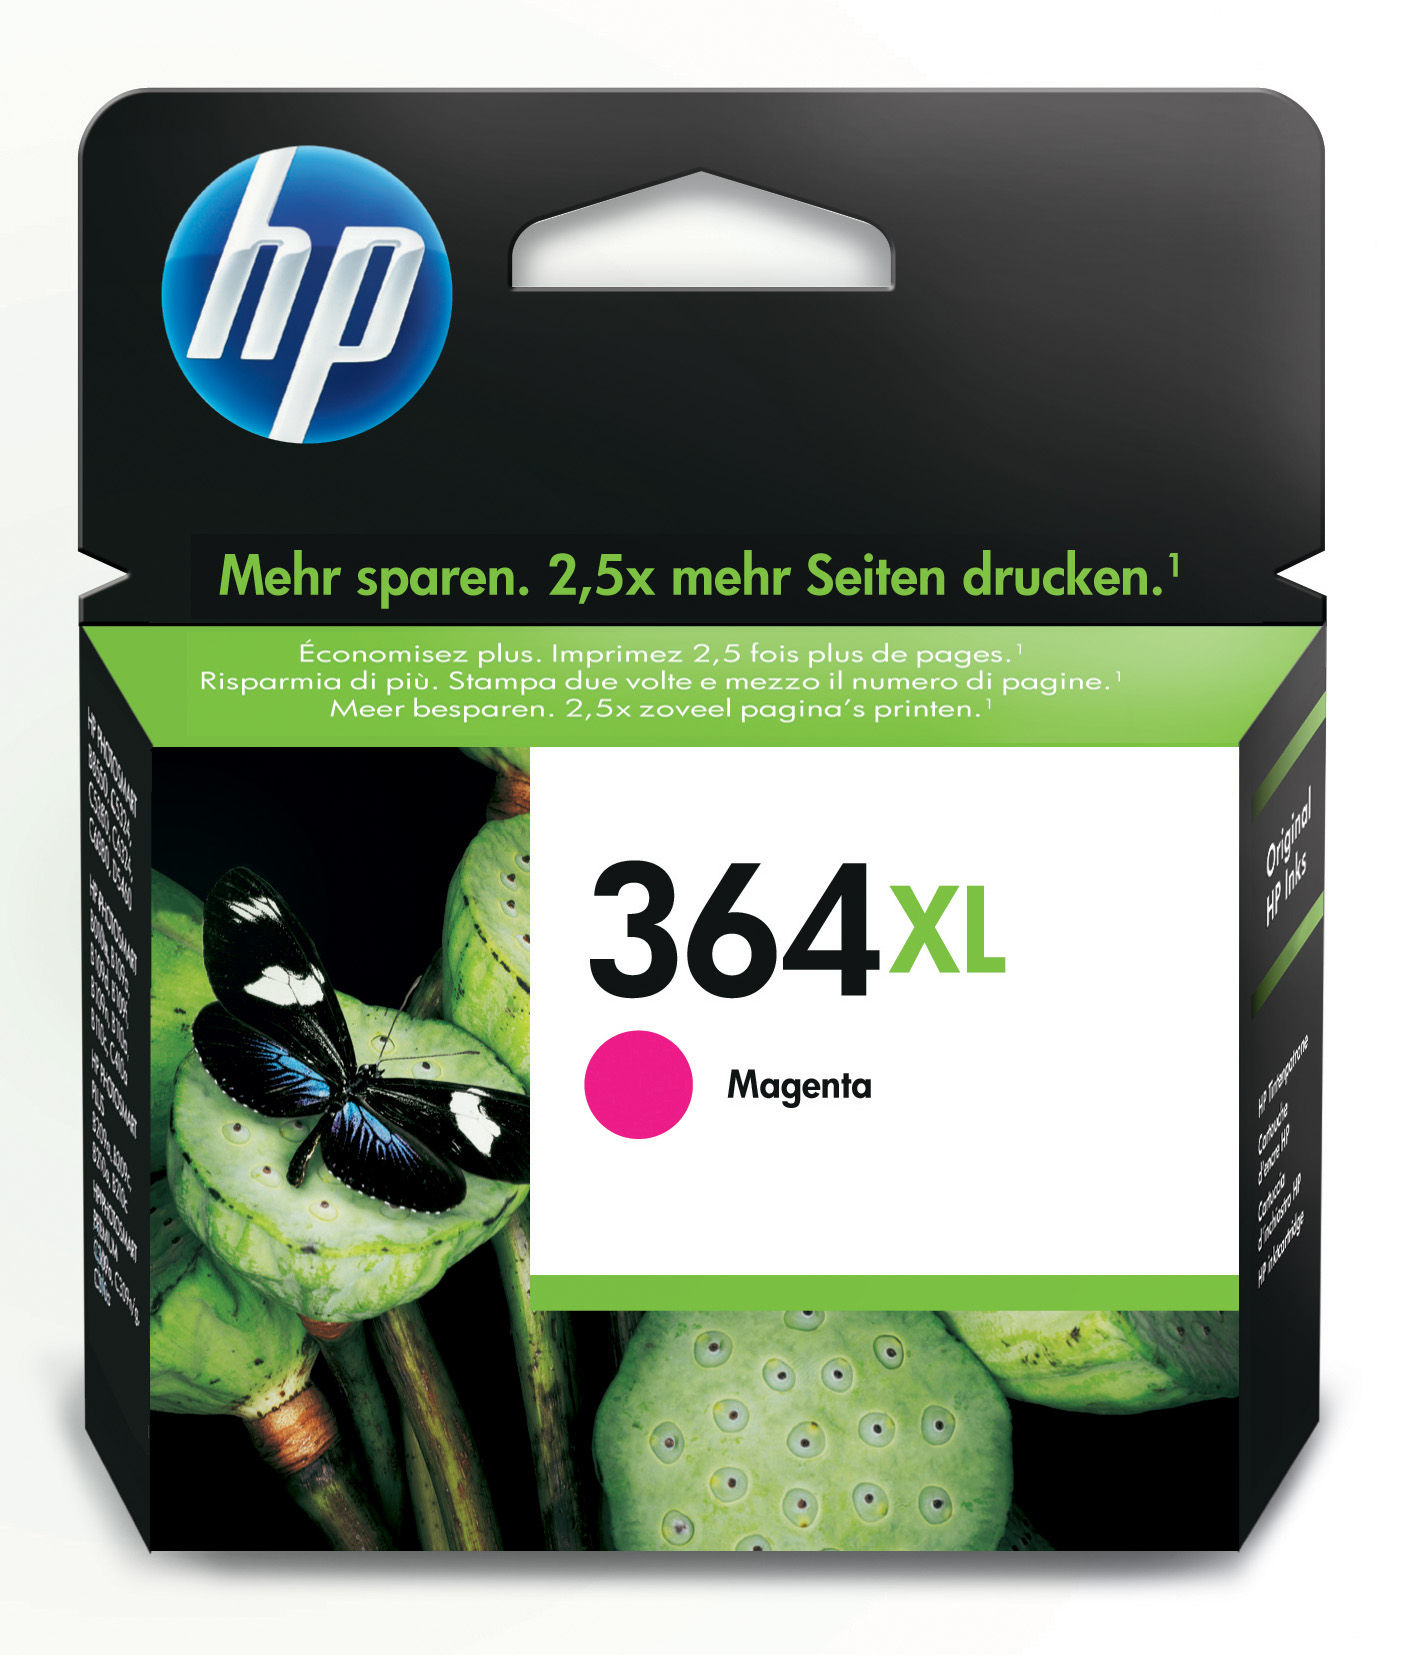 BB Reman HP CB324EE (364XL) Magenta Ink Cartridge CB324EE - rem01